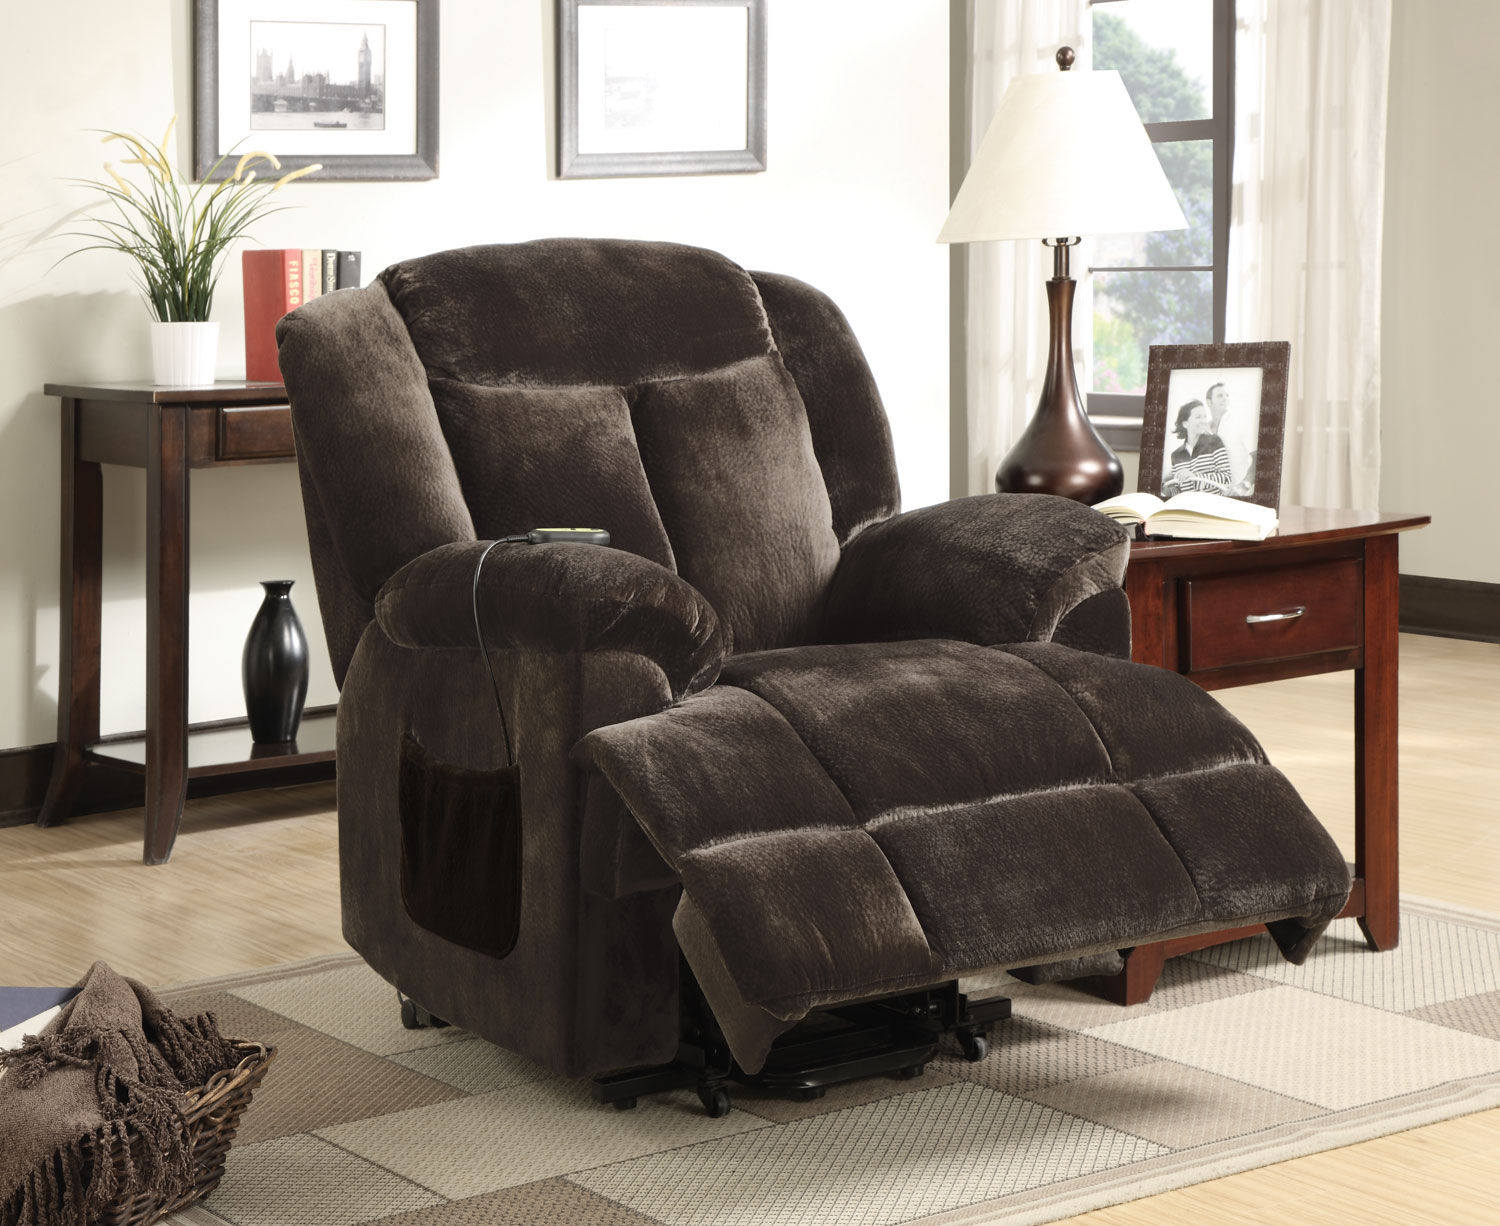 Coaster Living Room Power Lift Recliners 600173 in black on wooden floor plus carpet and table with table standing lamp ideas